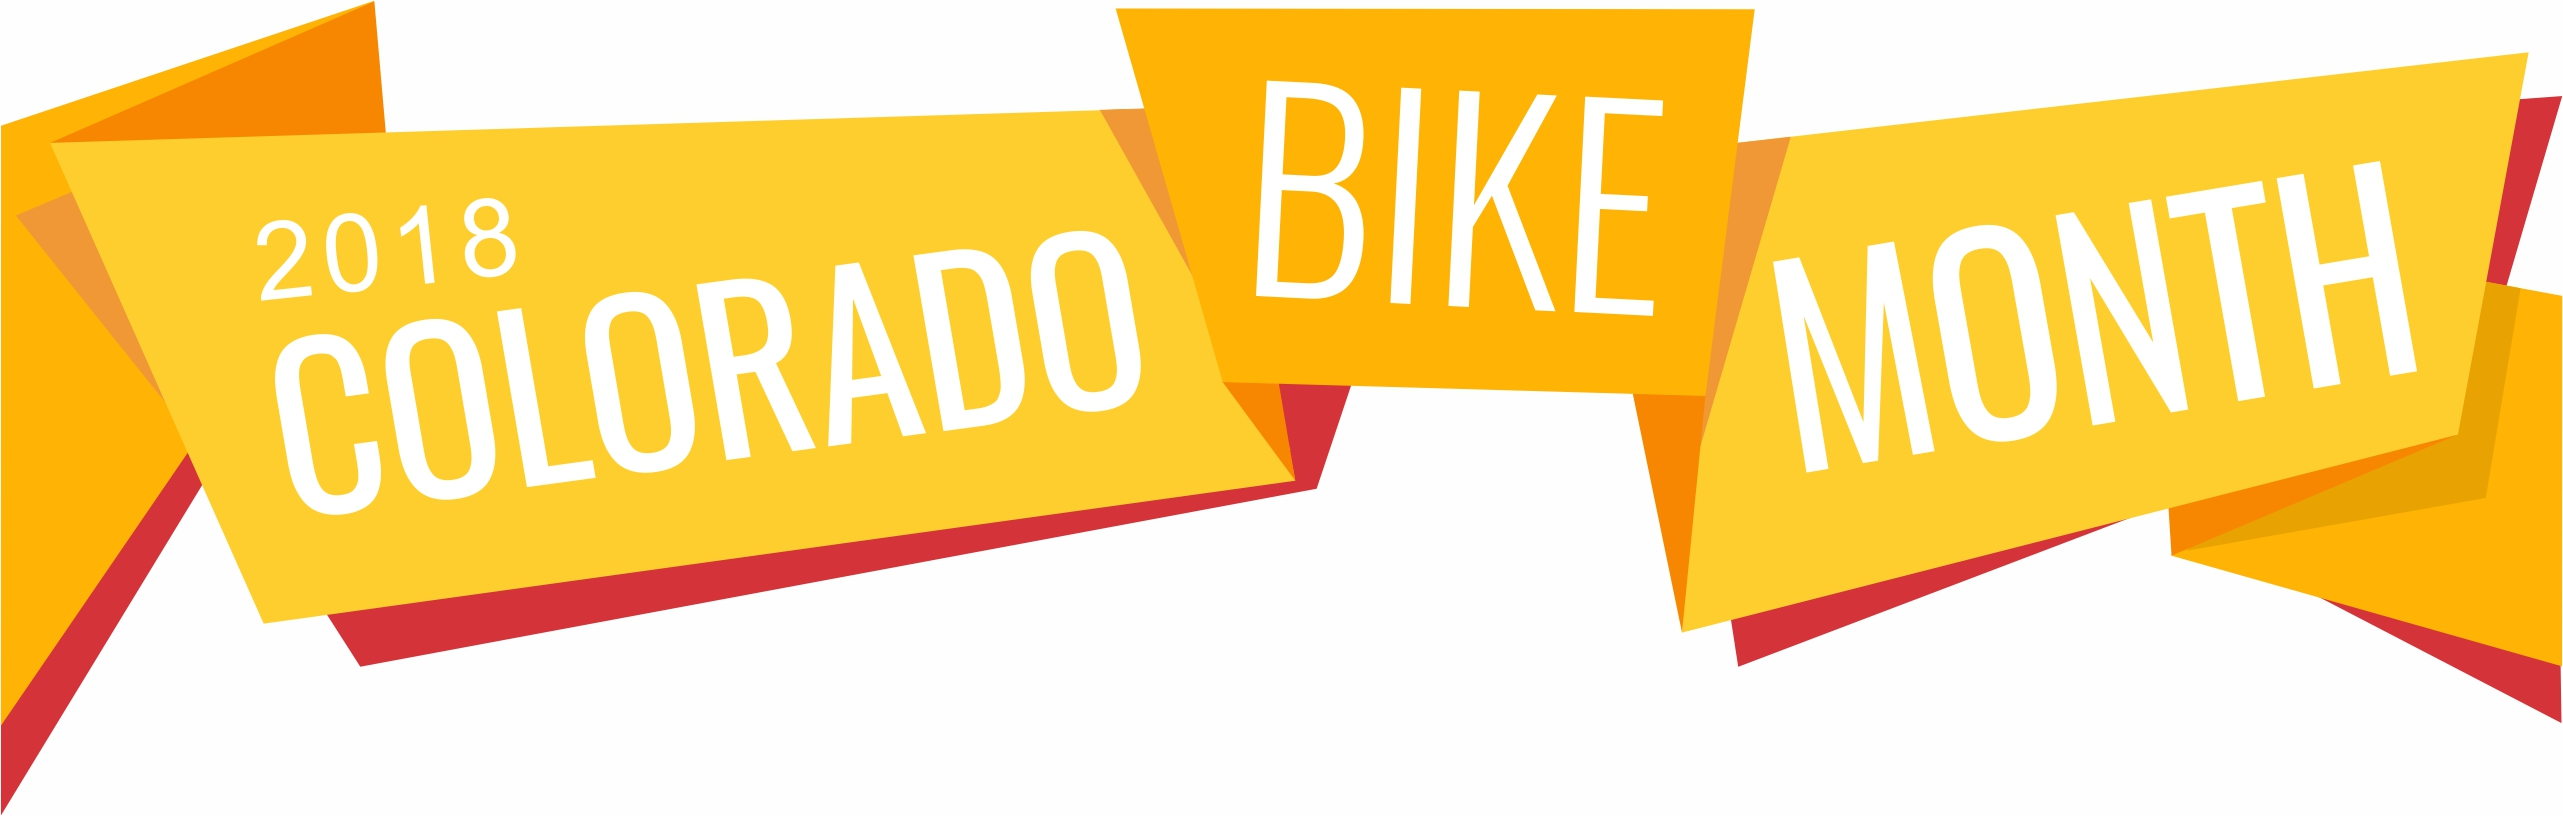 June Is Bike Month In Colorado